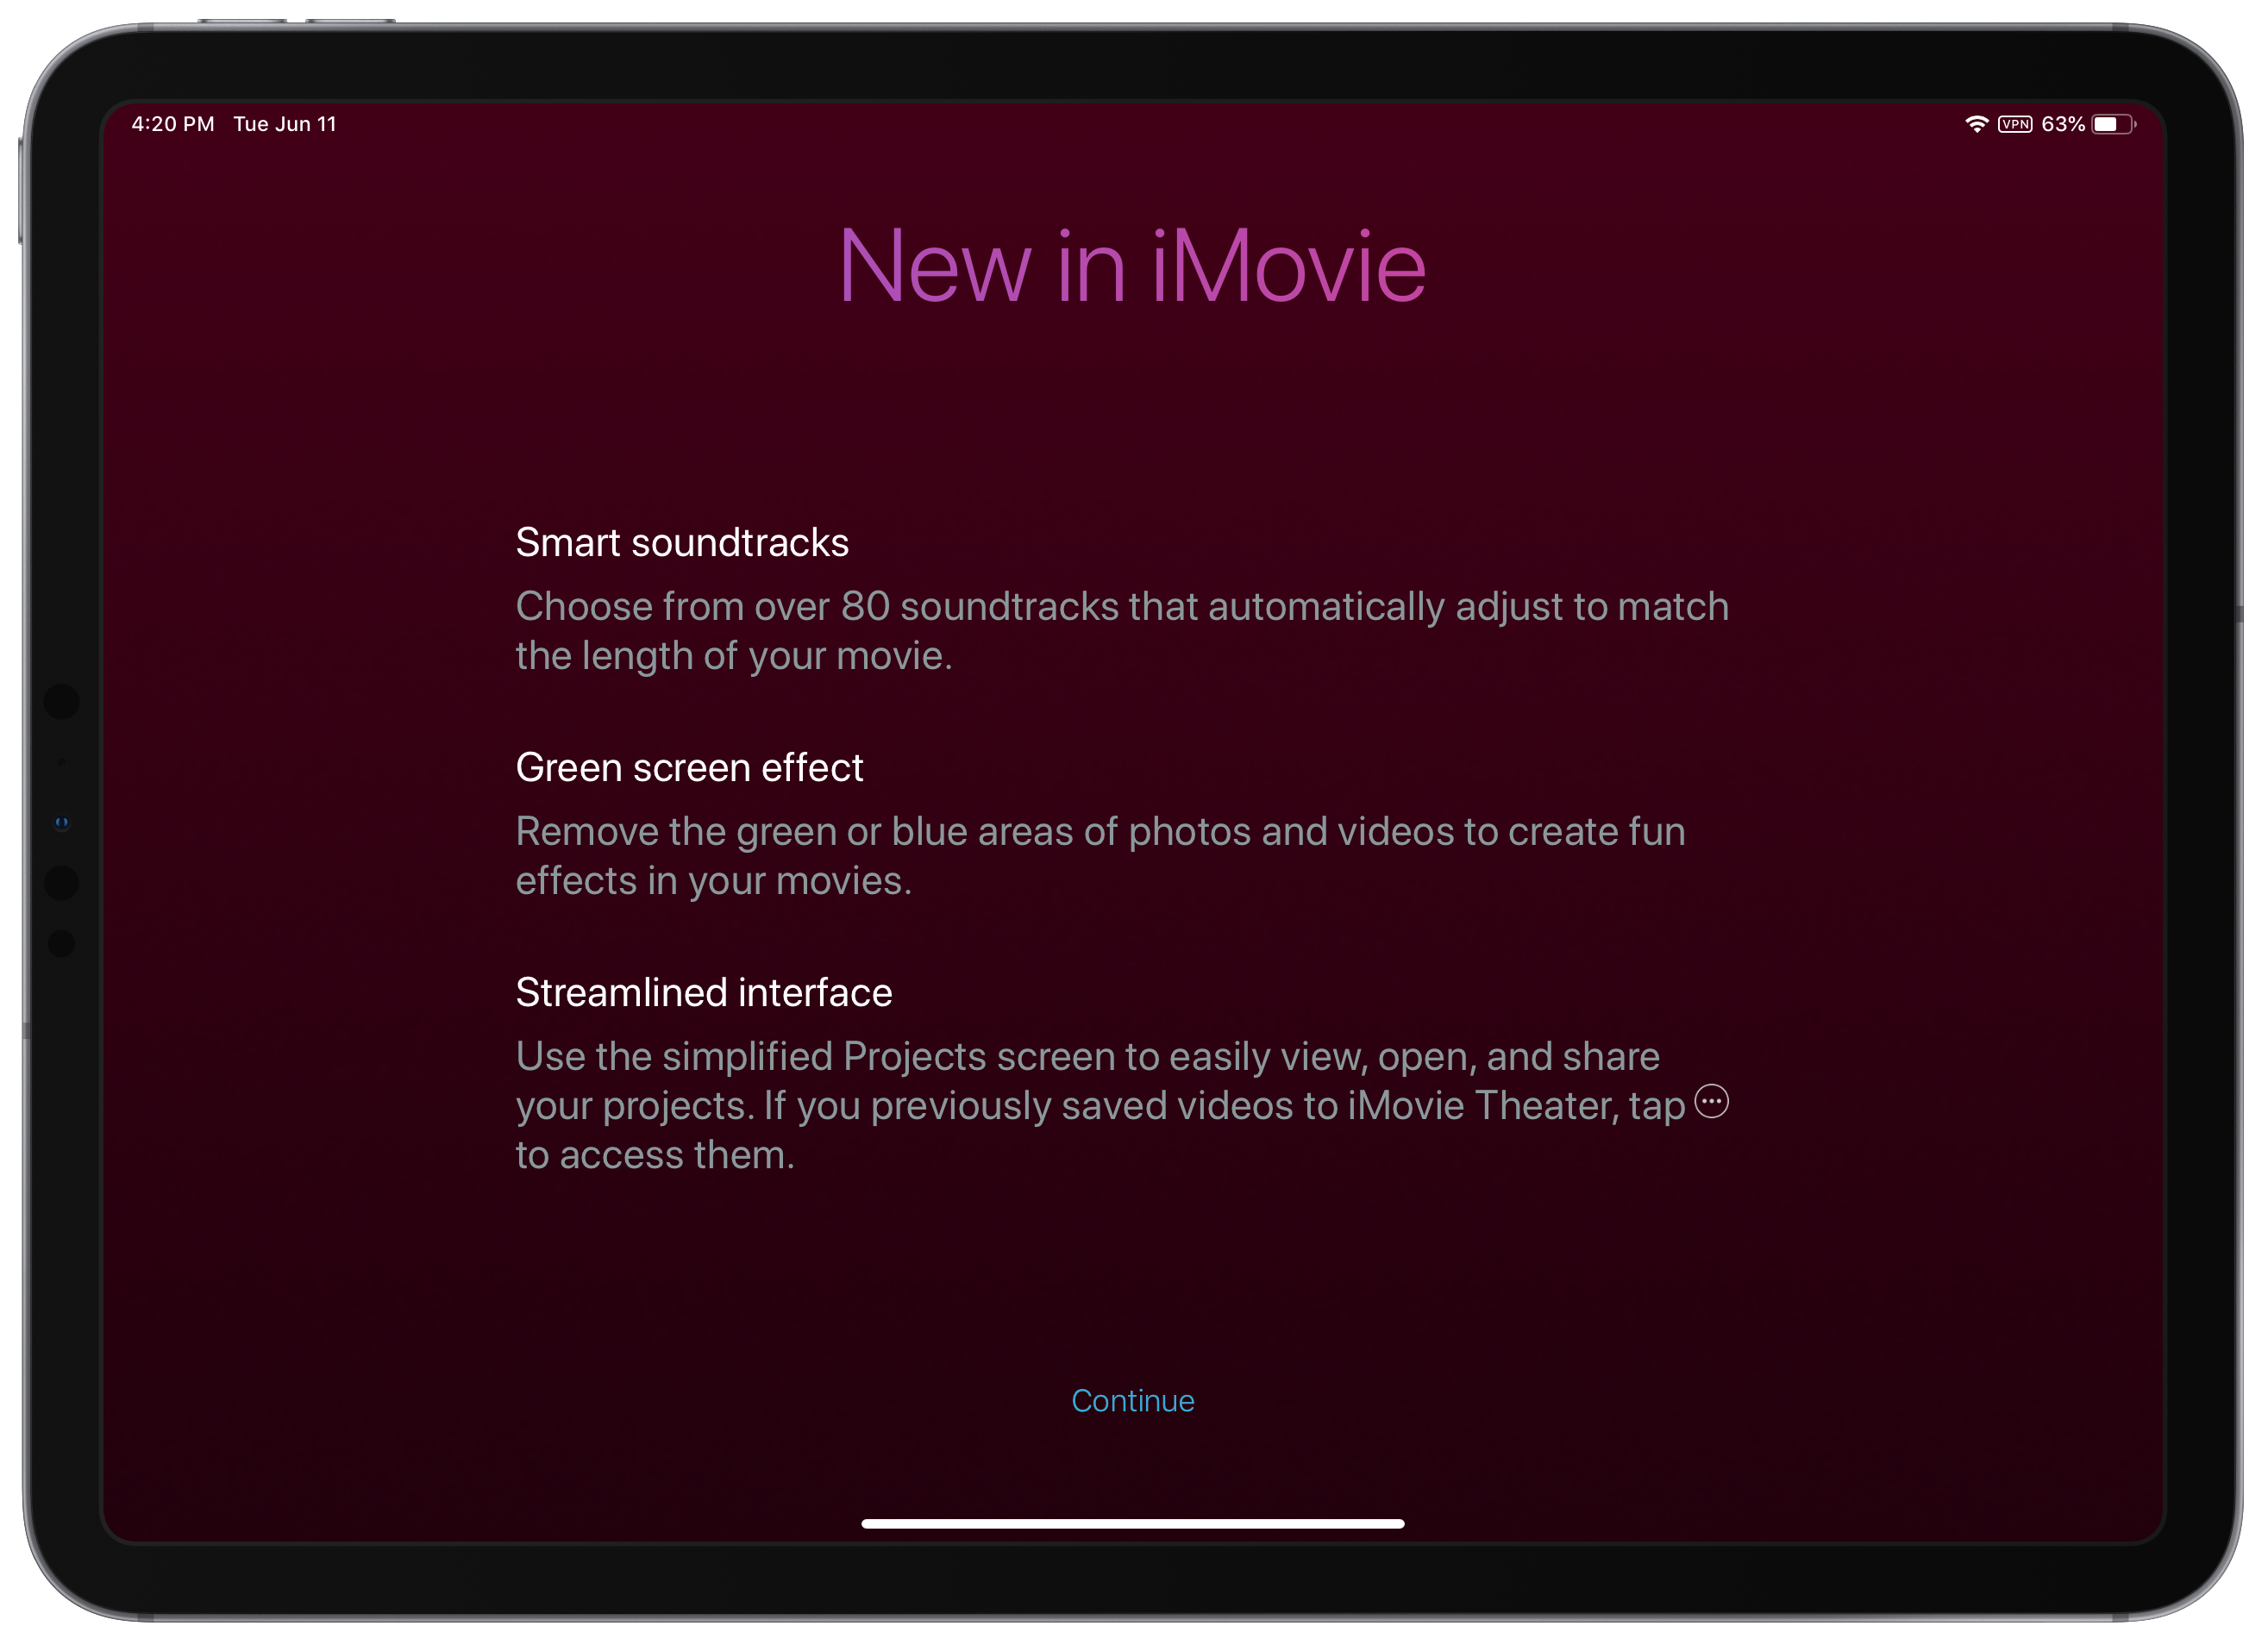 iMovie 2 2 7 Brings Green Screen Editing, New Soundtracks